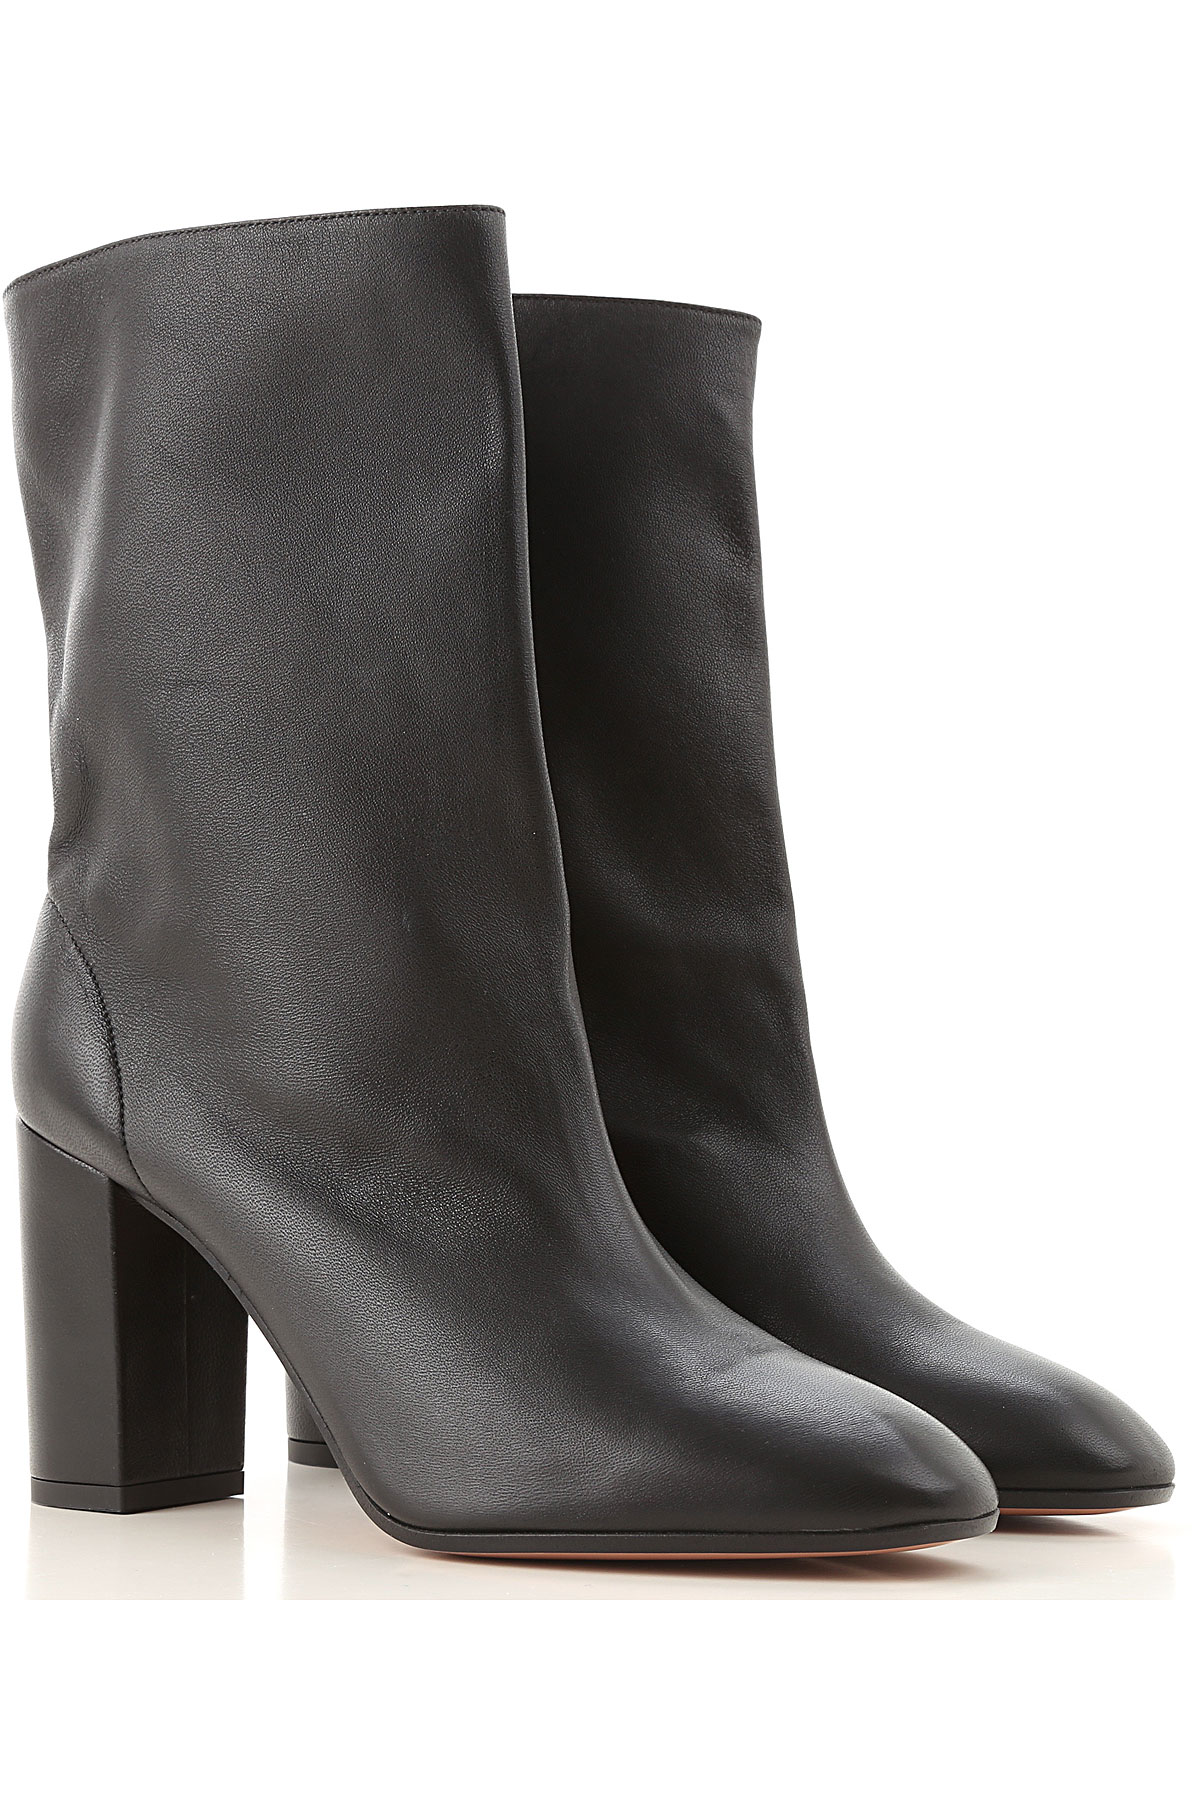 Aquazzura Boots for Women, Booties On Sale in Outlet, Black, Leather, 2019, 10 8 8.5